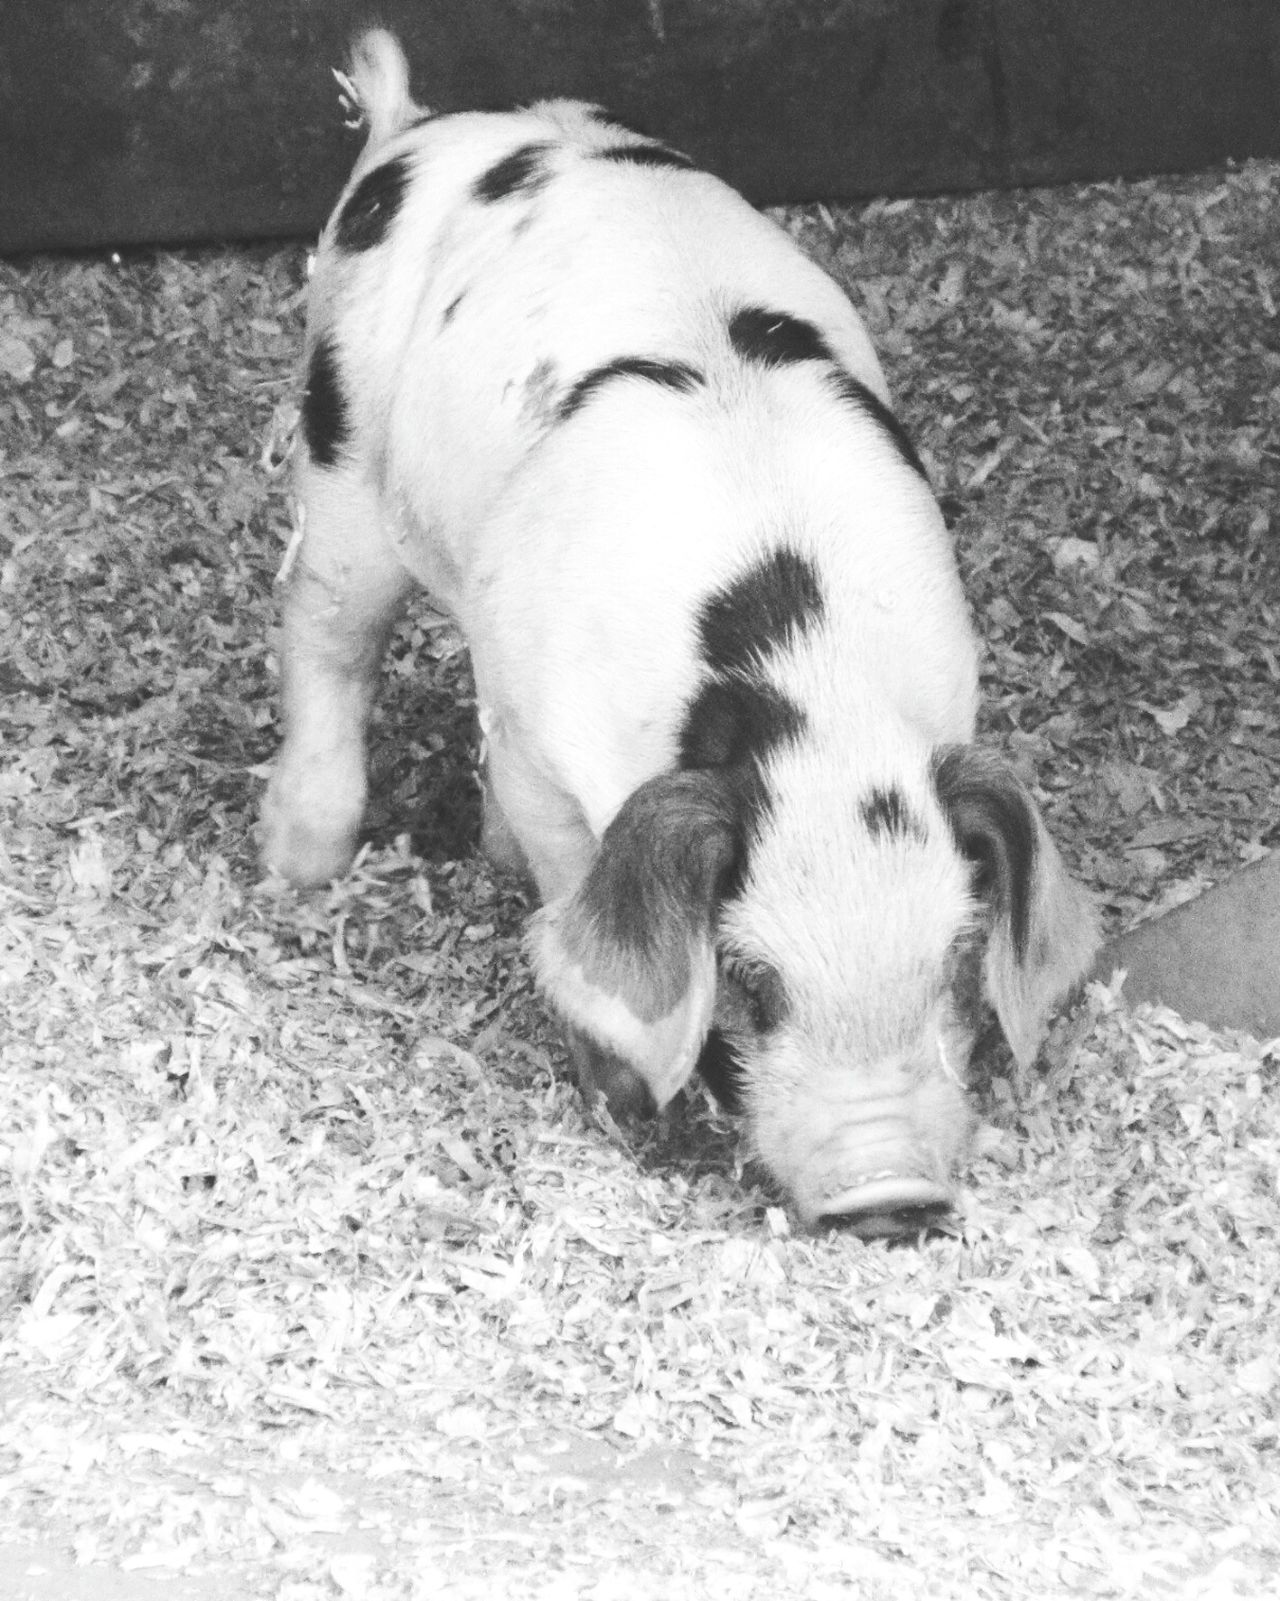 BabyPig Cuteness Close-up Love To Take Photos ❤ Blackandwhite Eyephotography